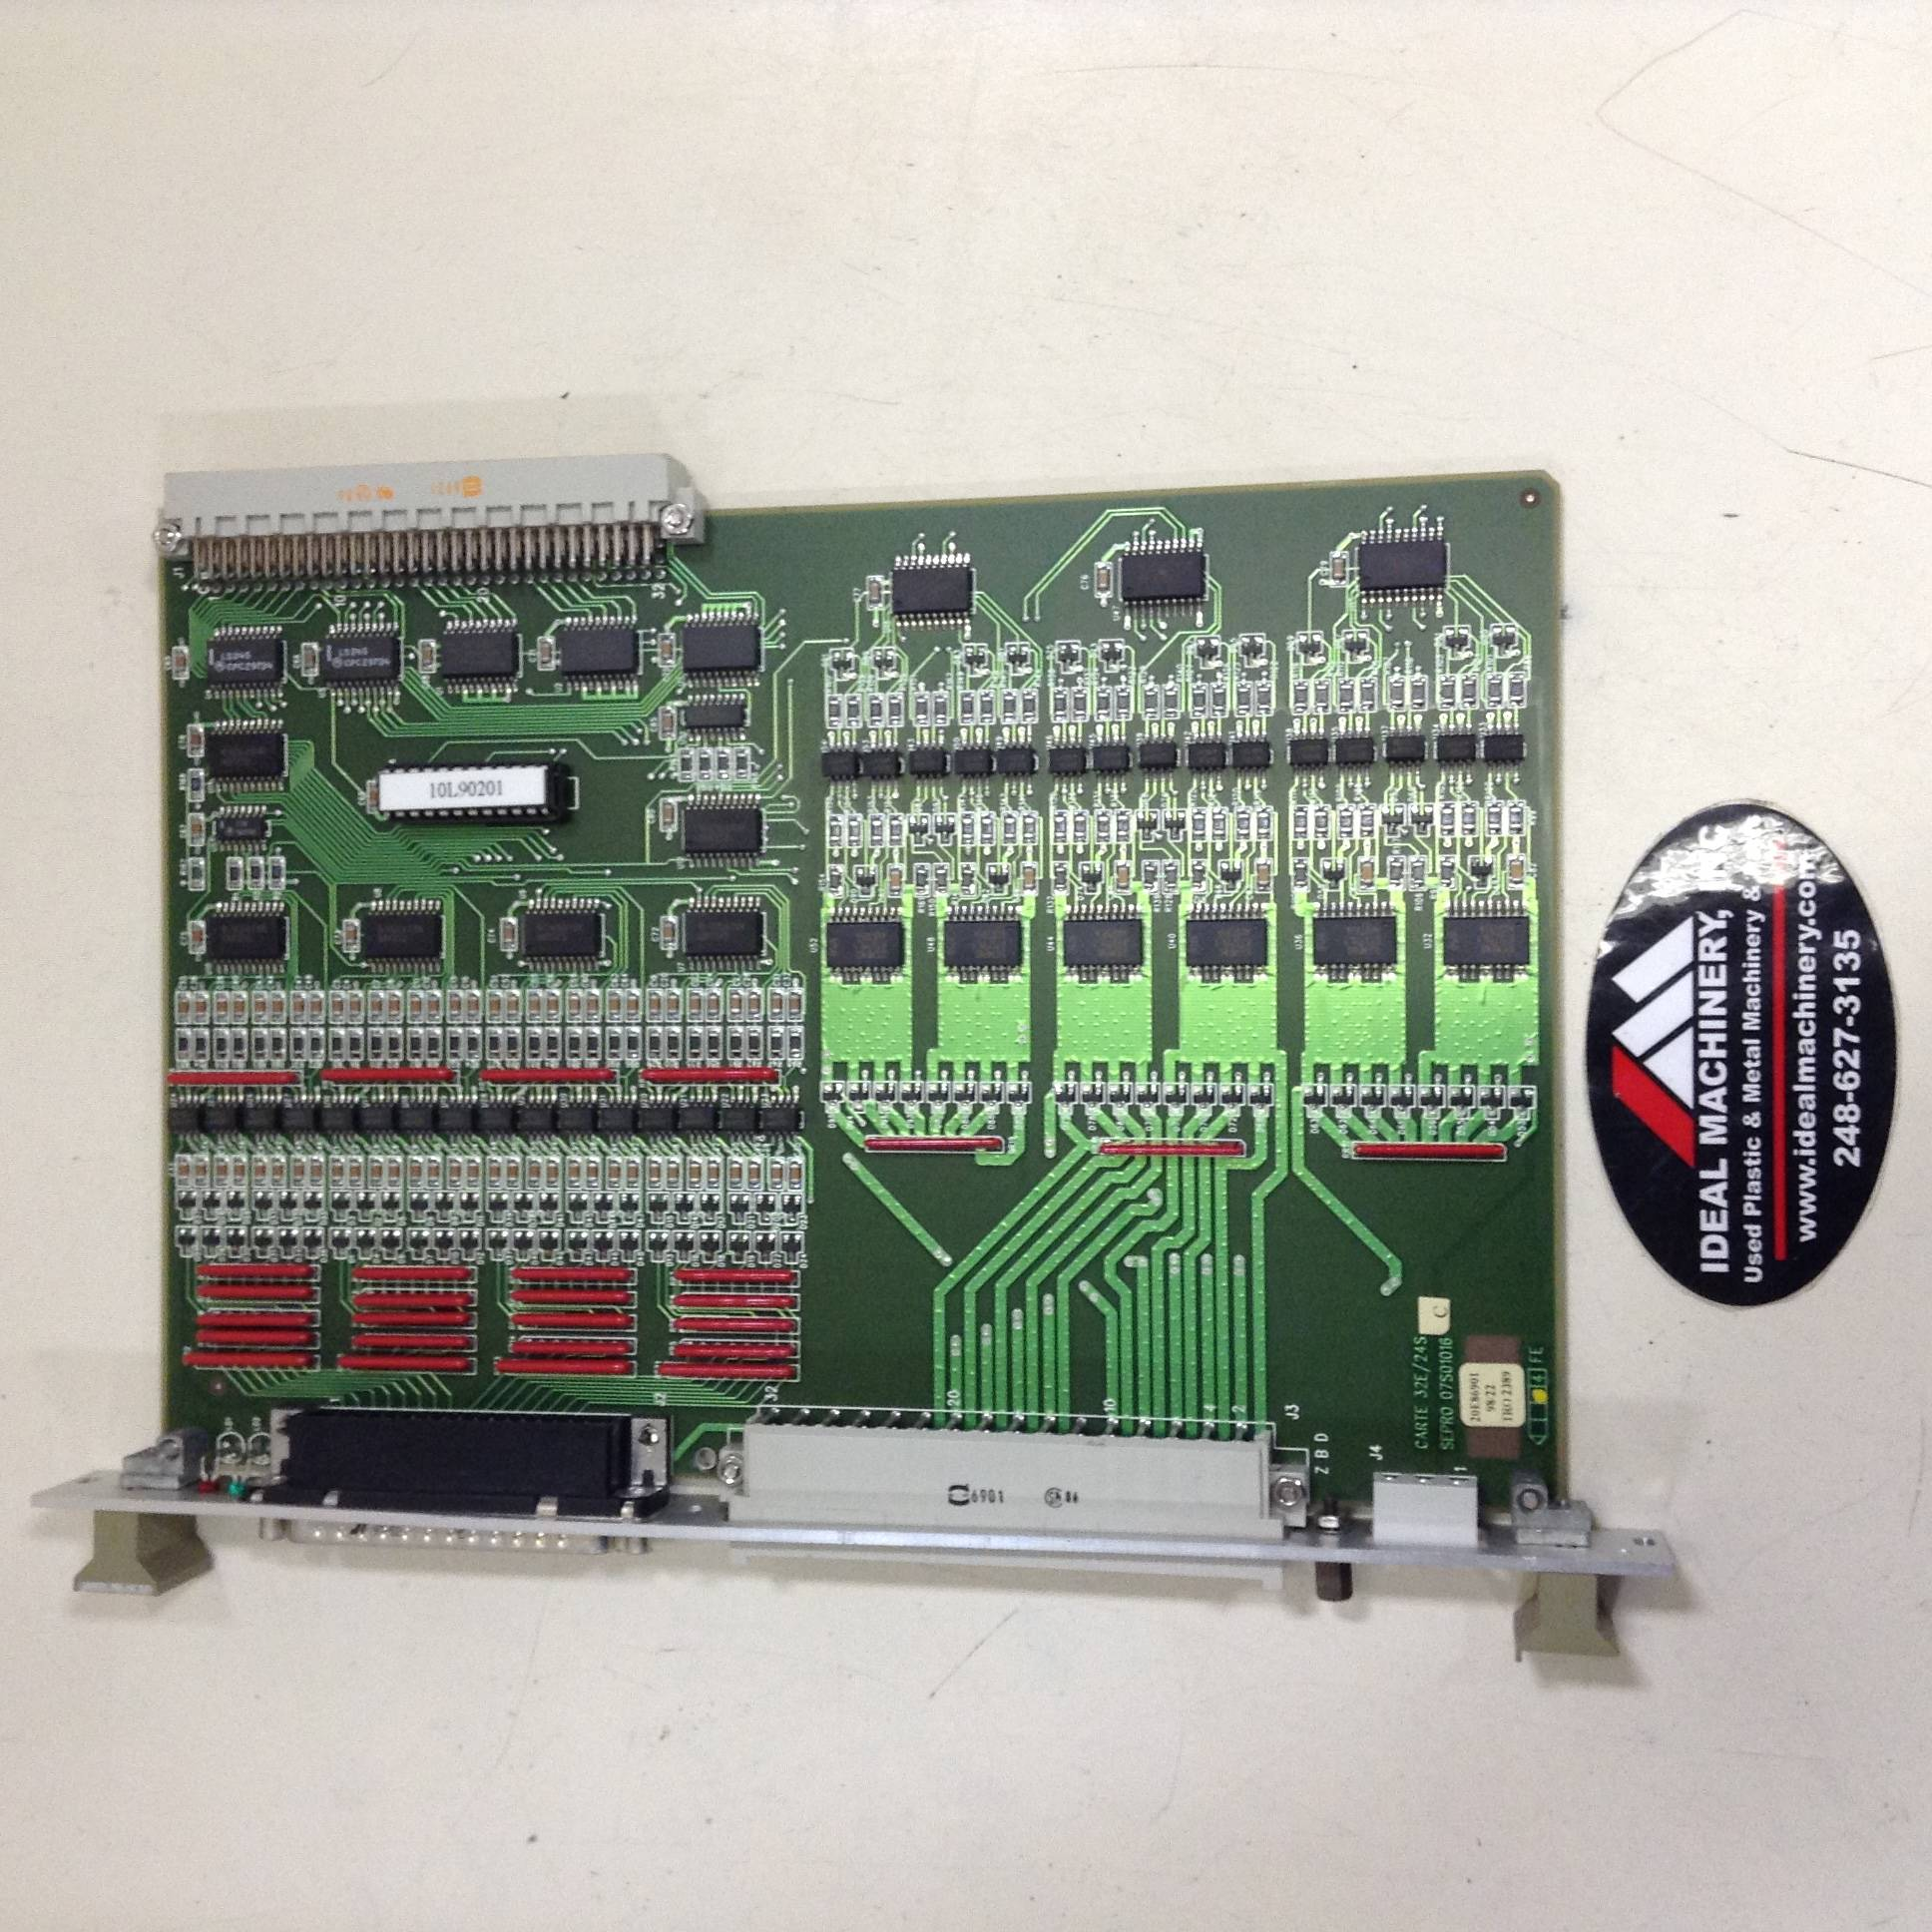 Sepro Robotique Circuit Board 20e86901 Used 82471 Ebay Home Panavise Large Holder Image Gallery Click To View Larger